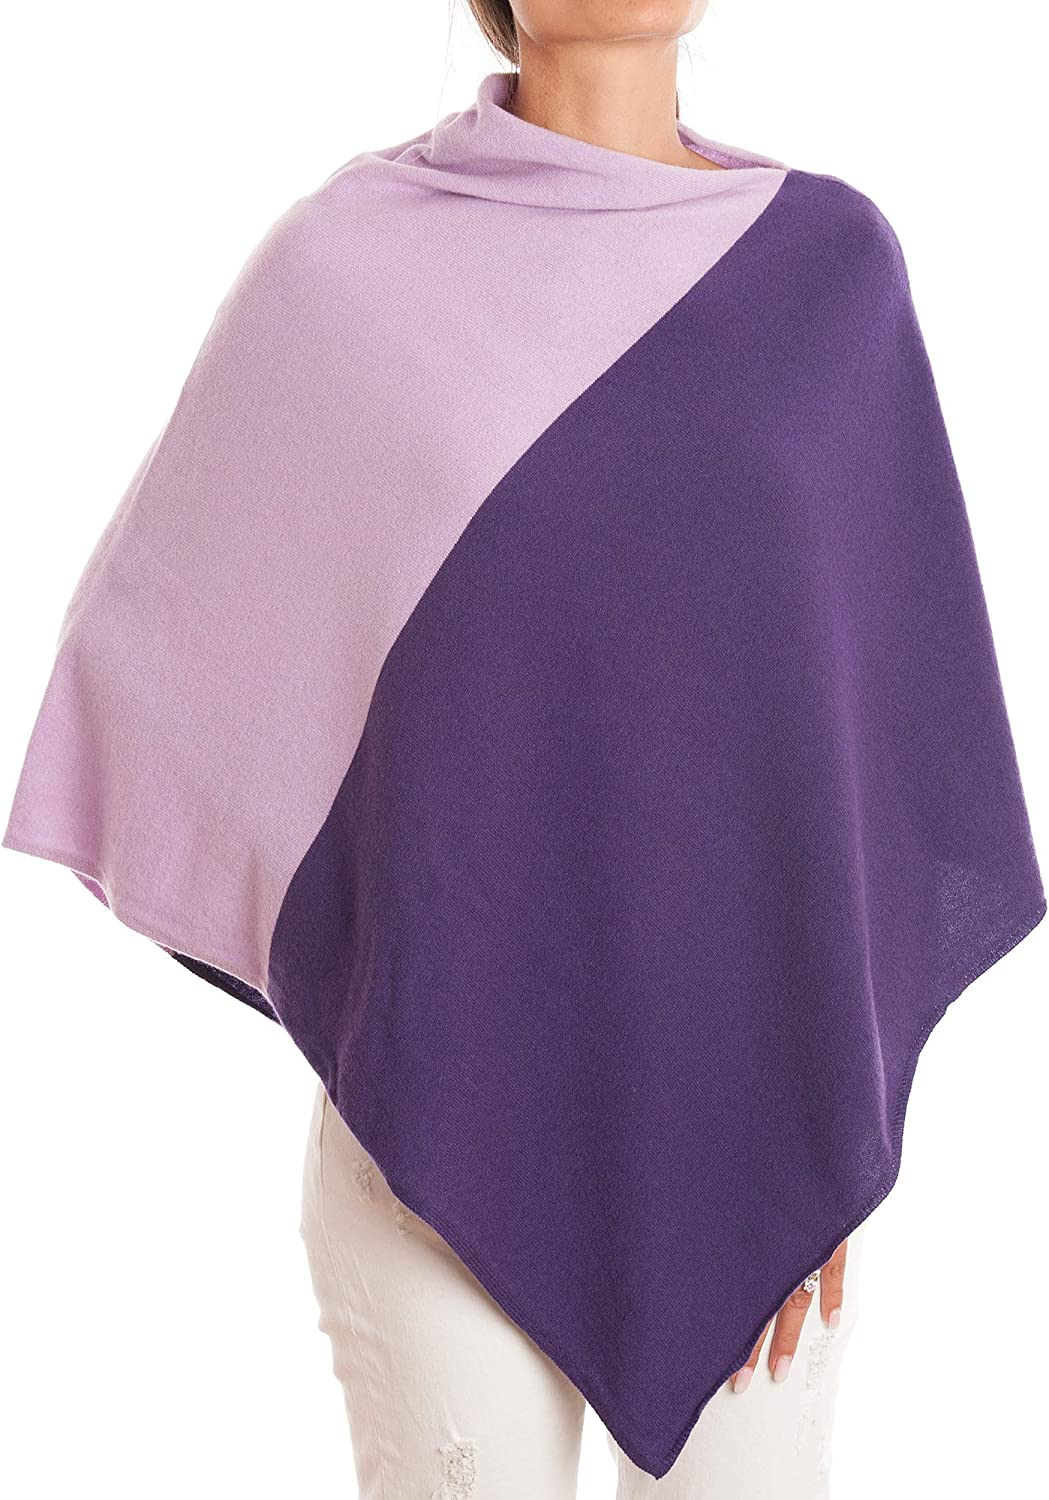 Poncho 100/% Cashmere DALLE PIANE CASHMERE Made in Italy